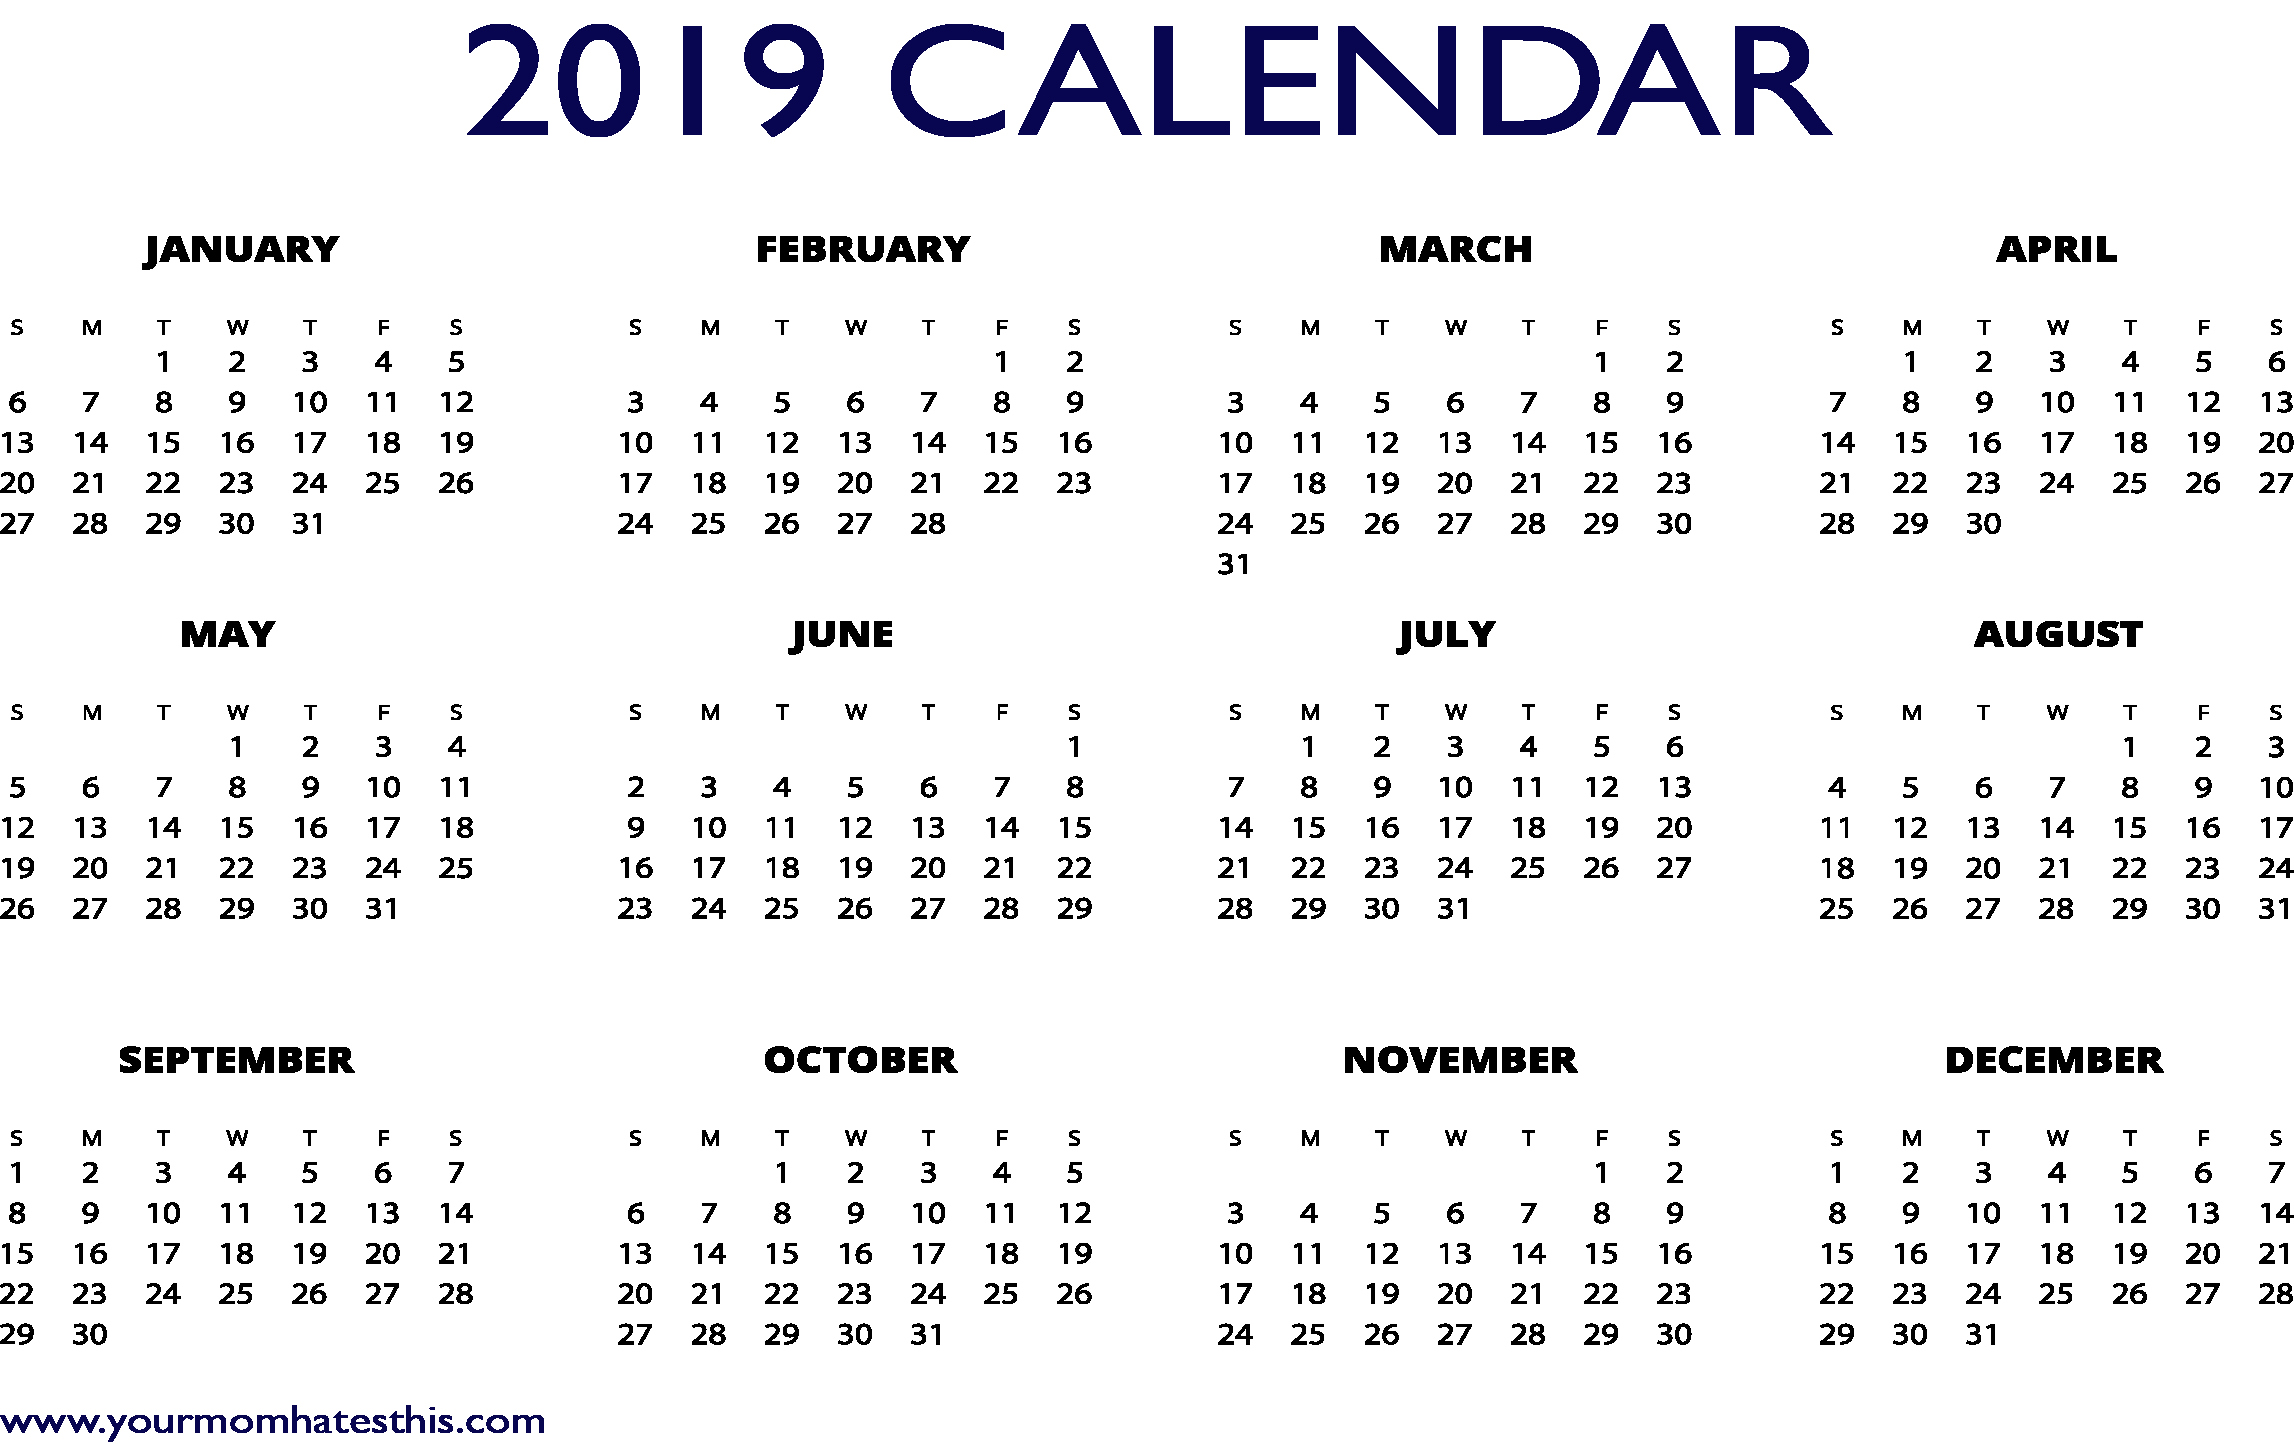 Excel Calendar 2019 Template Fresh 2019 Calendars Download Pdf Templates